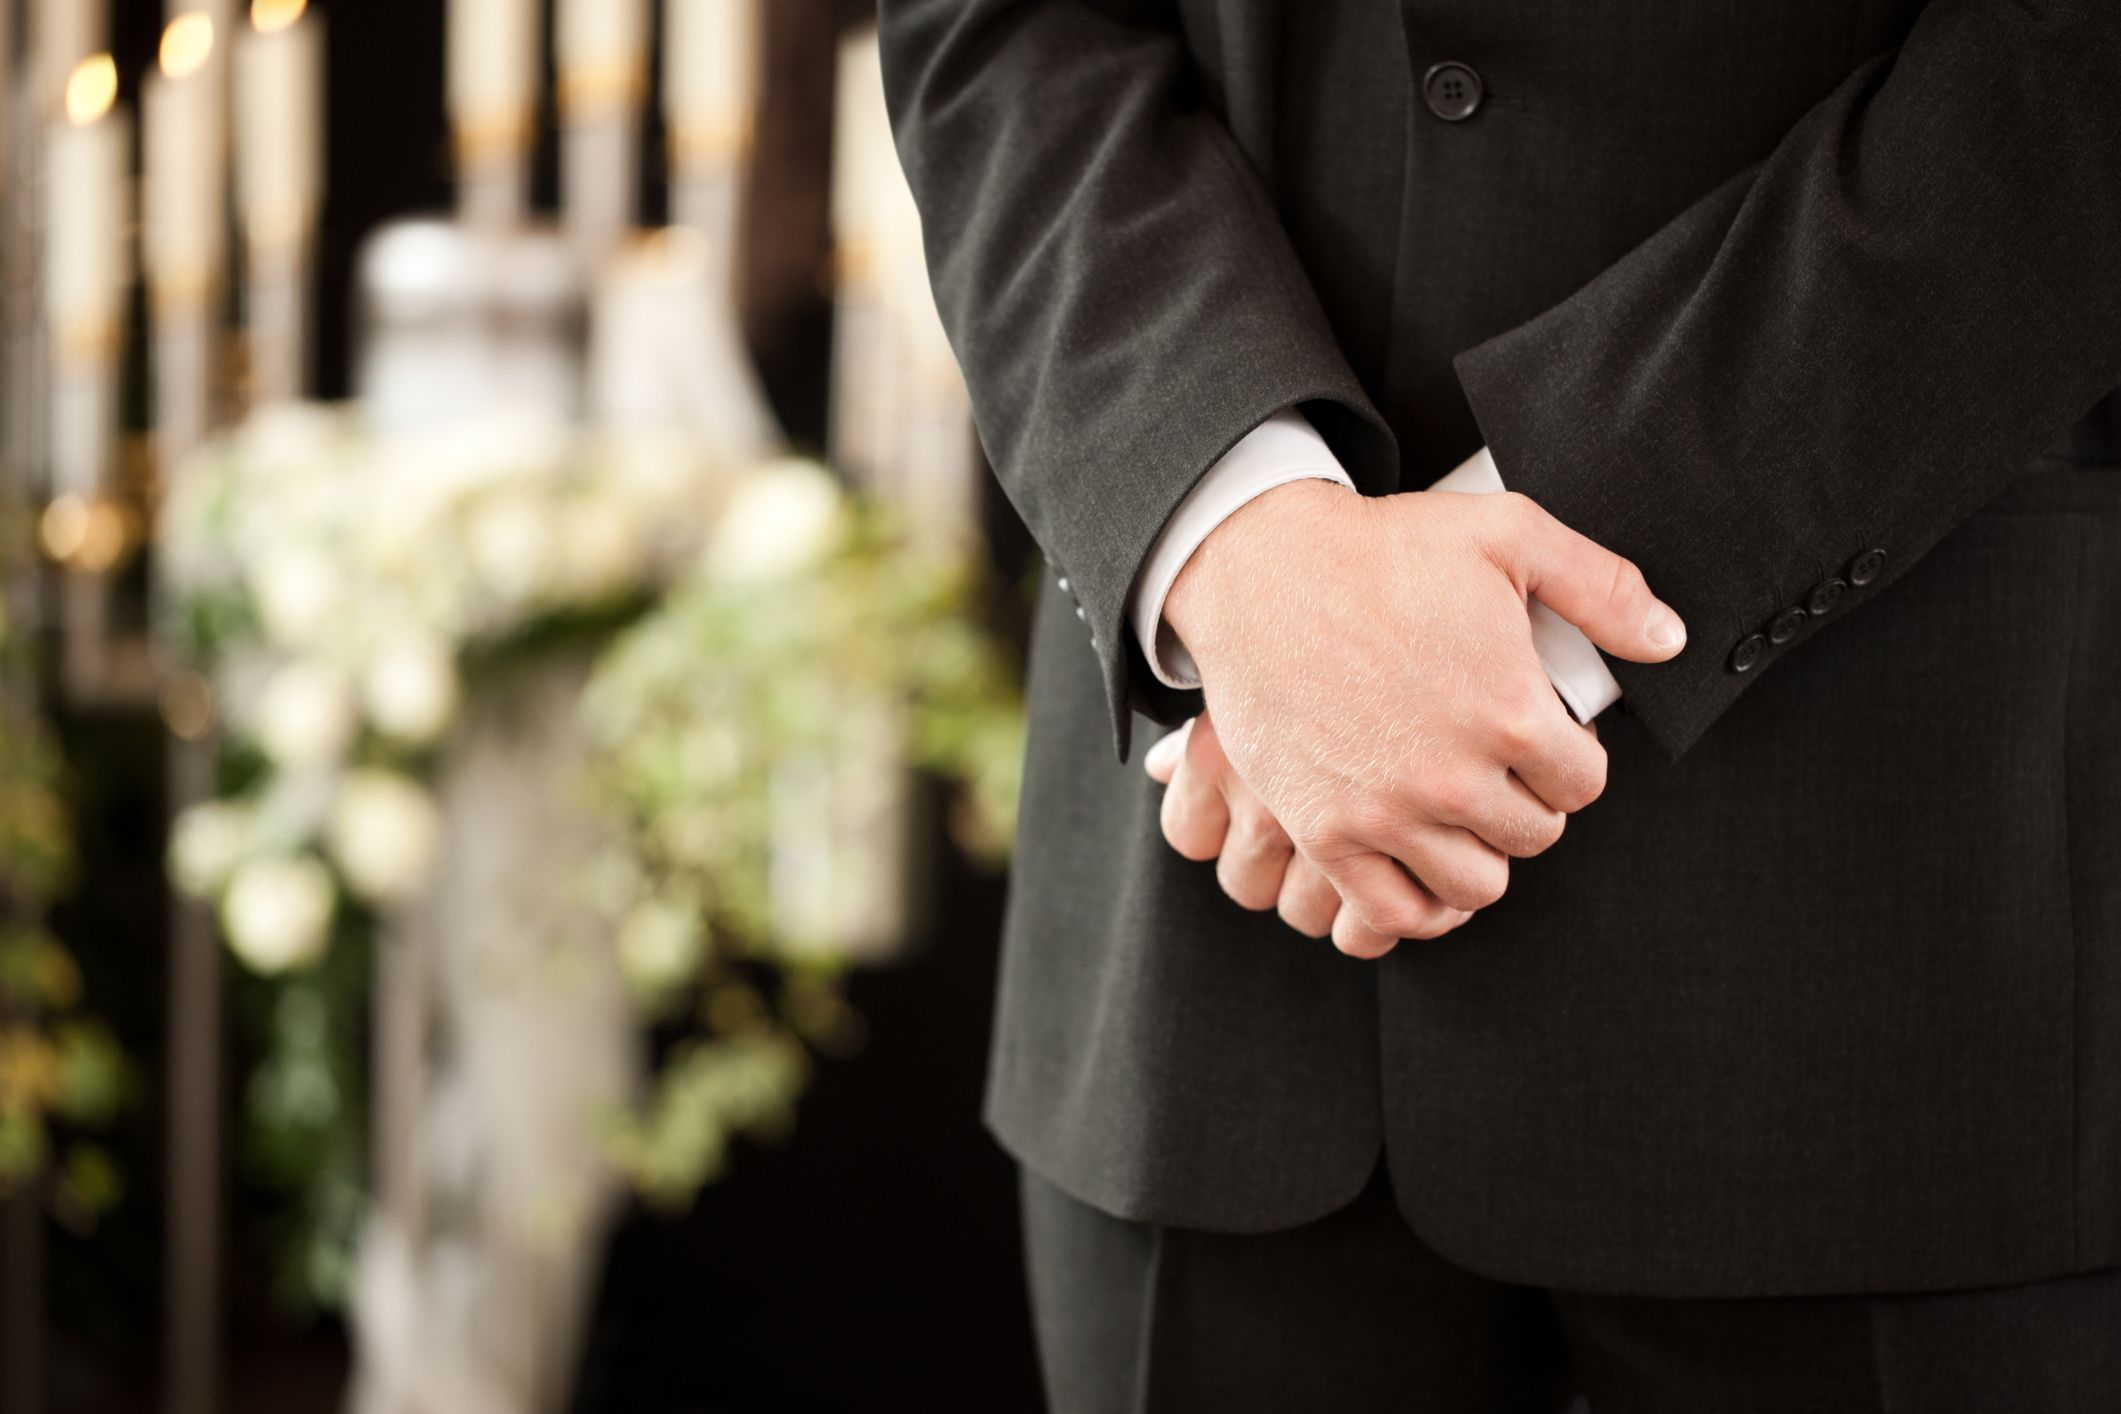 A man at a funeral with his hands together.   Source: Getty Images